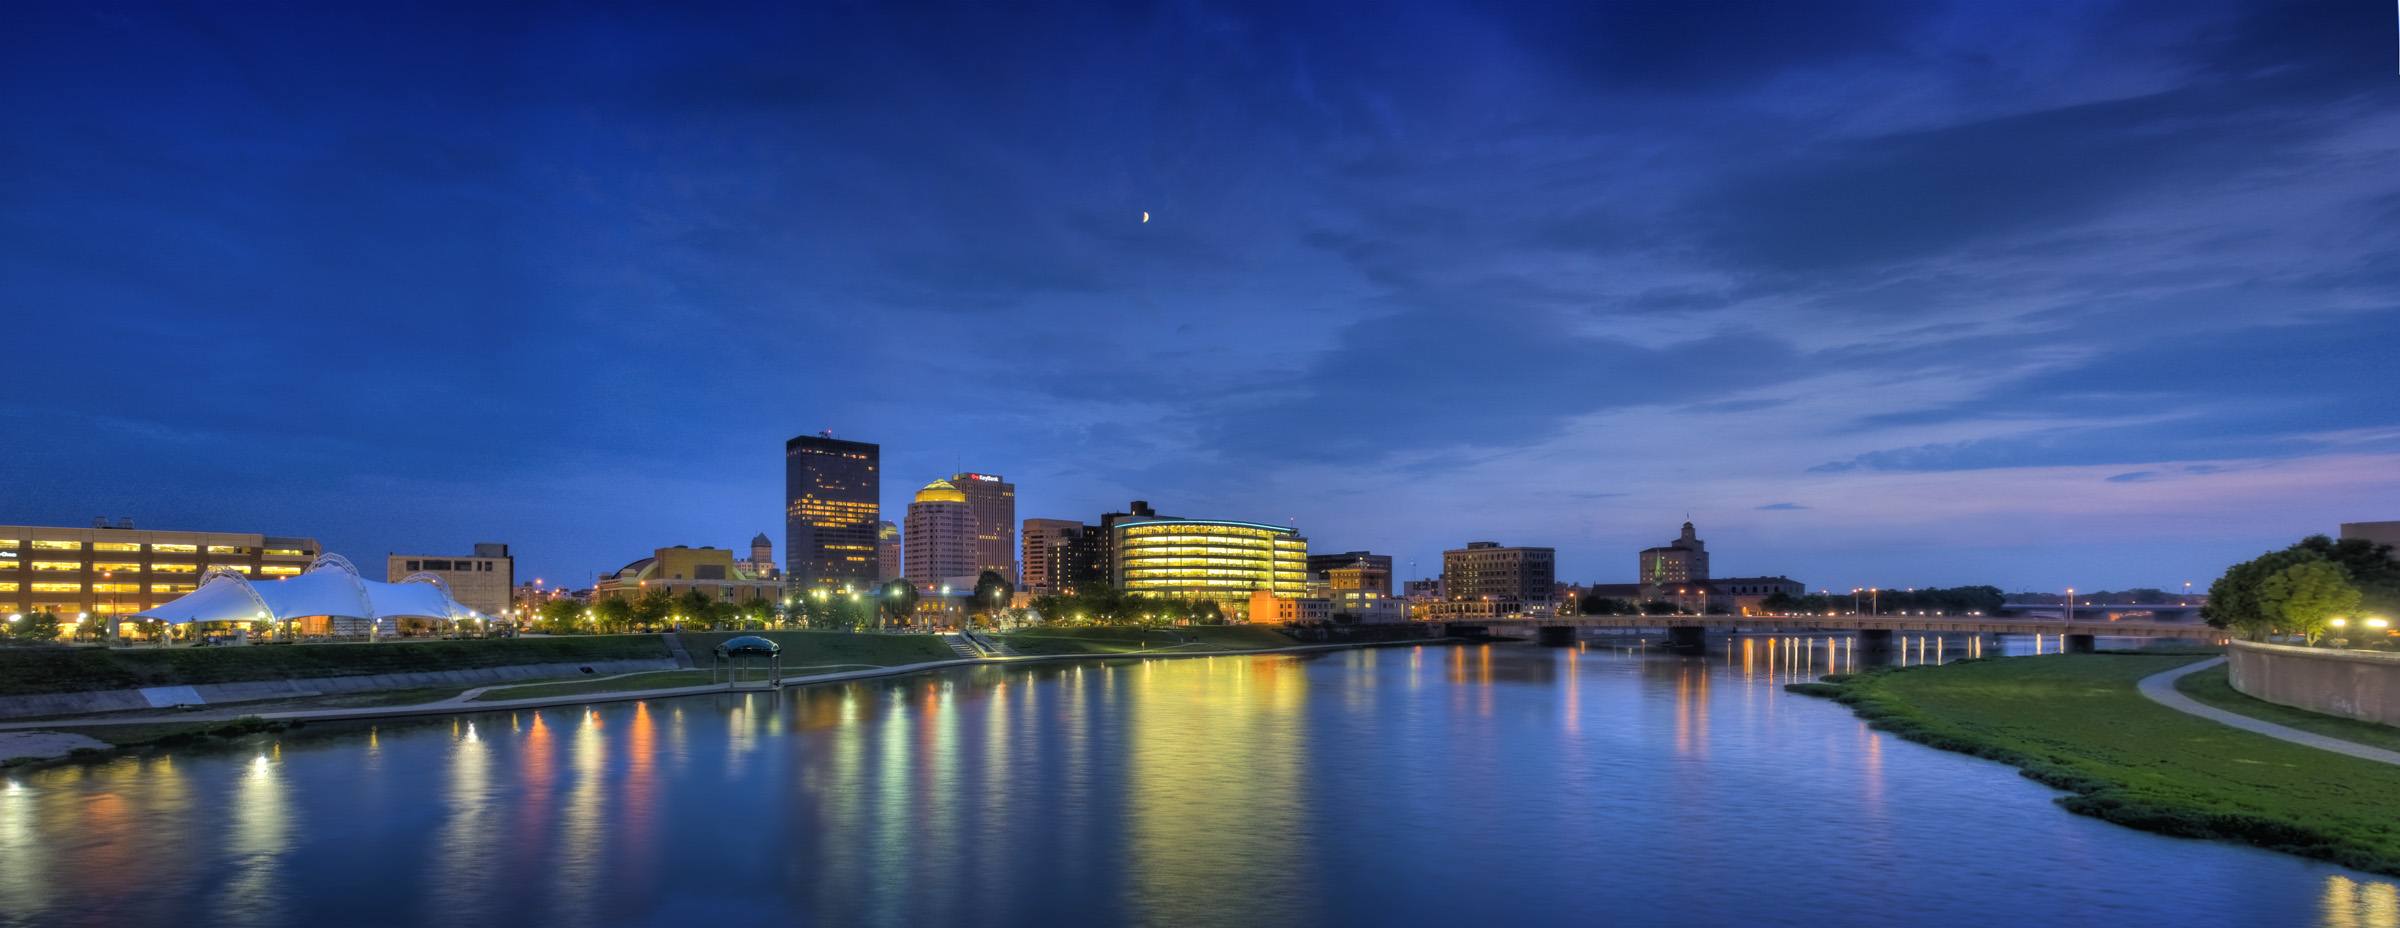 Panorama of Downtown Dayton skyline at twilight, looking across the Great Miami River near RiverScape MetroPark